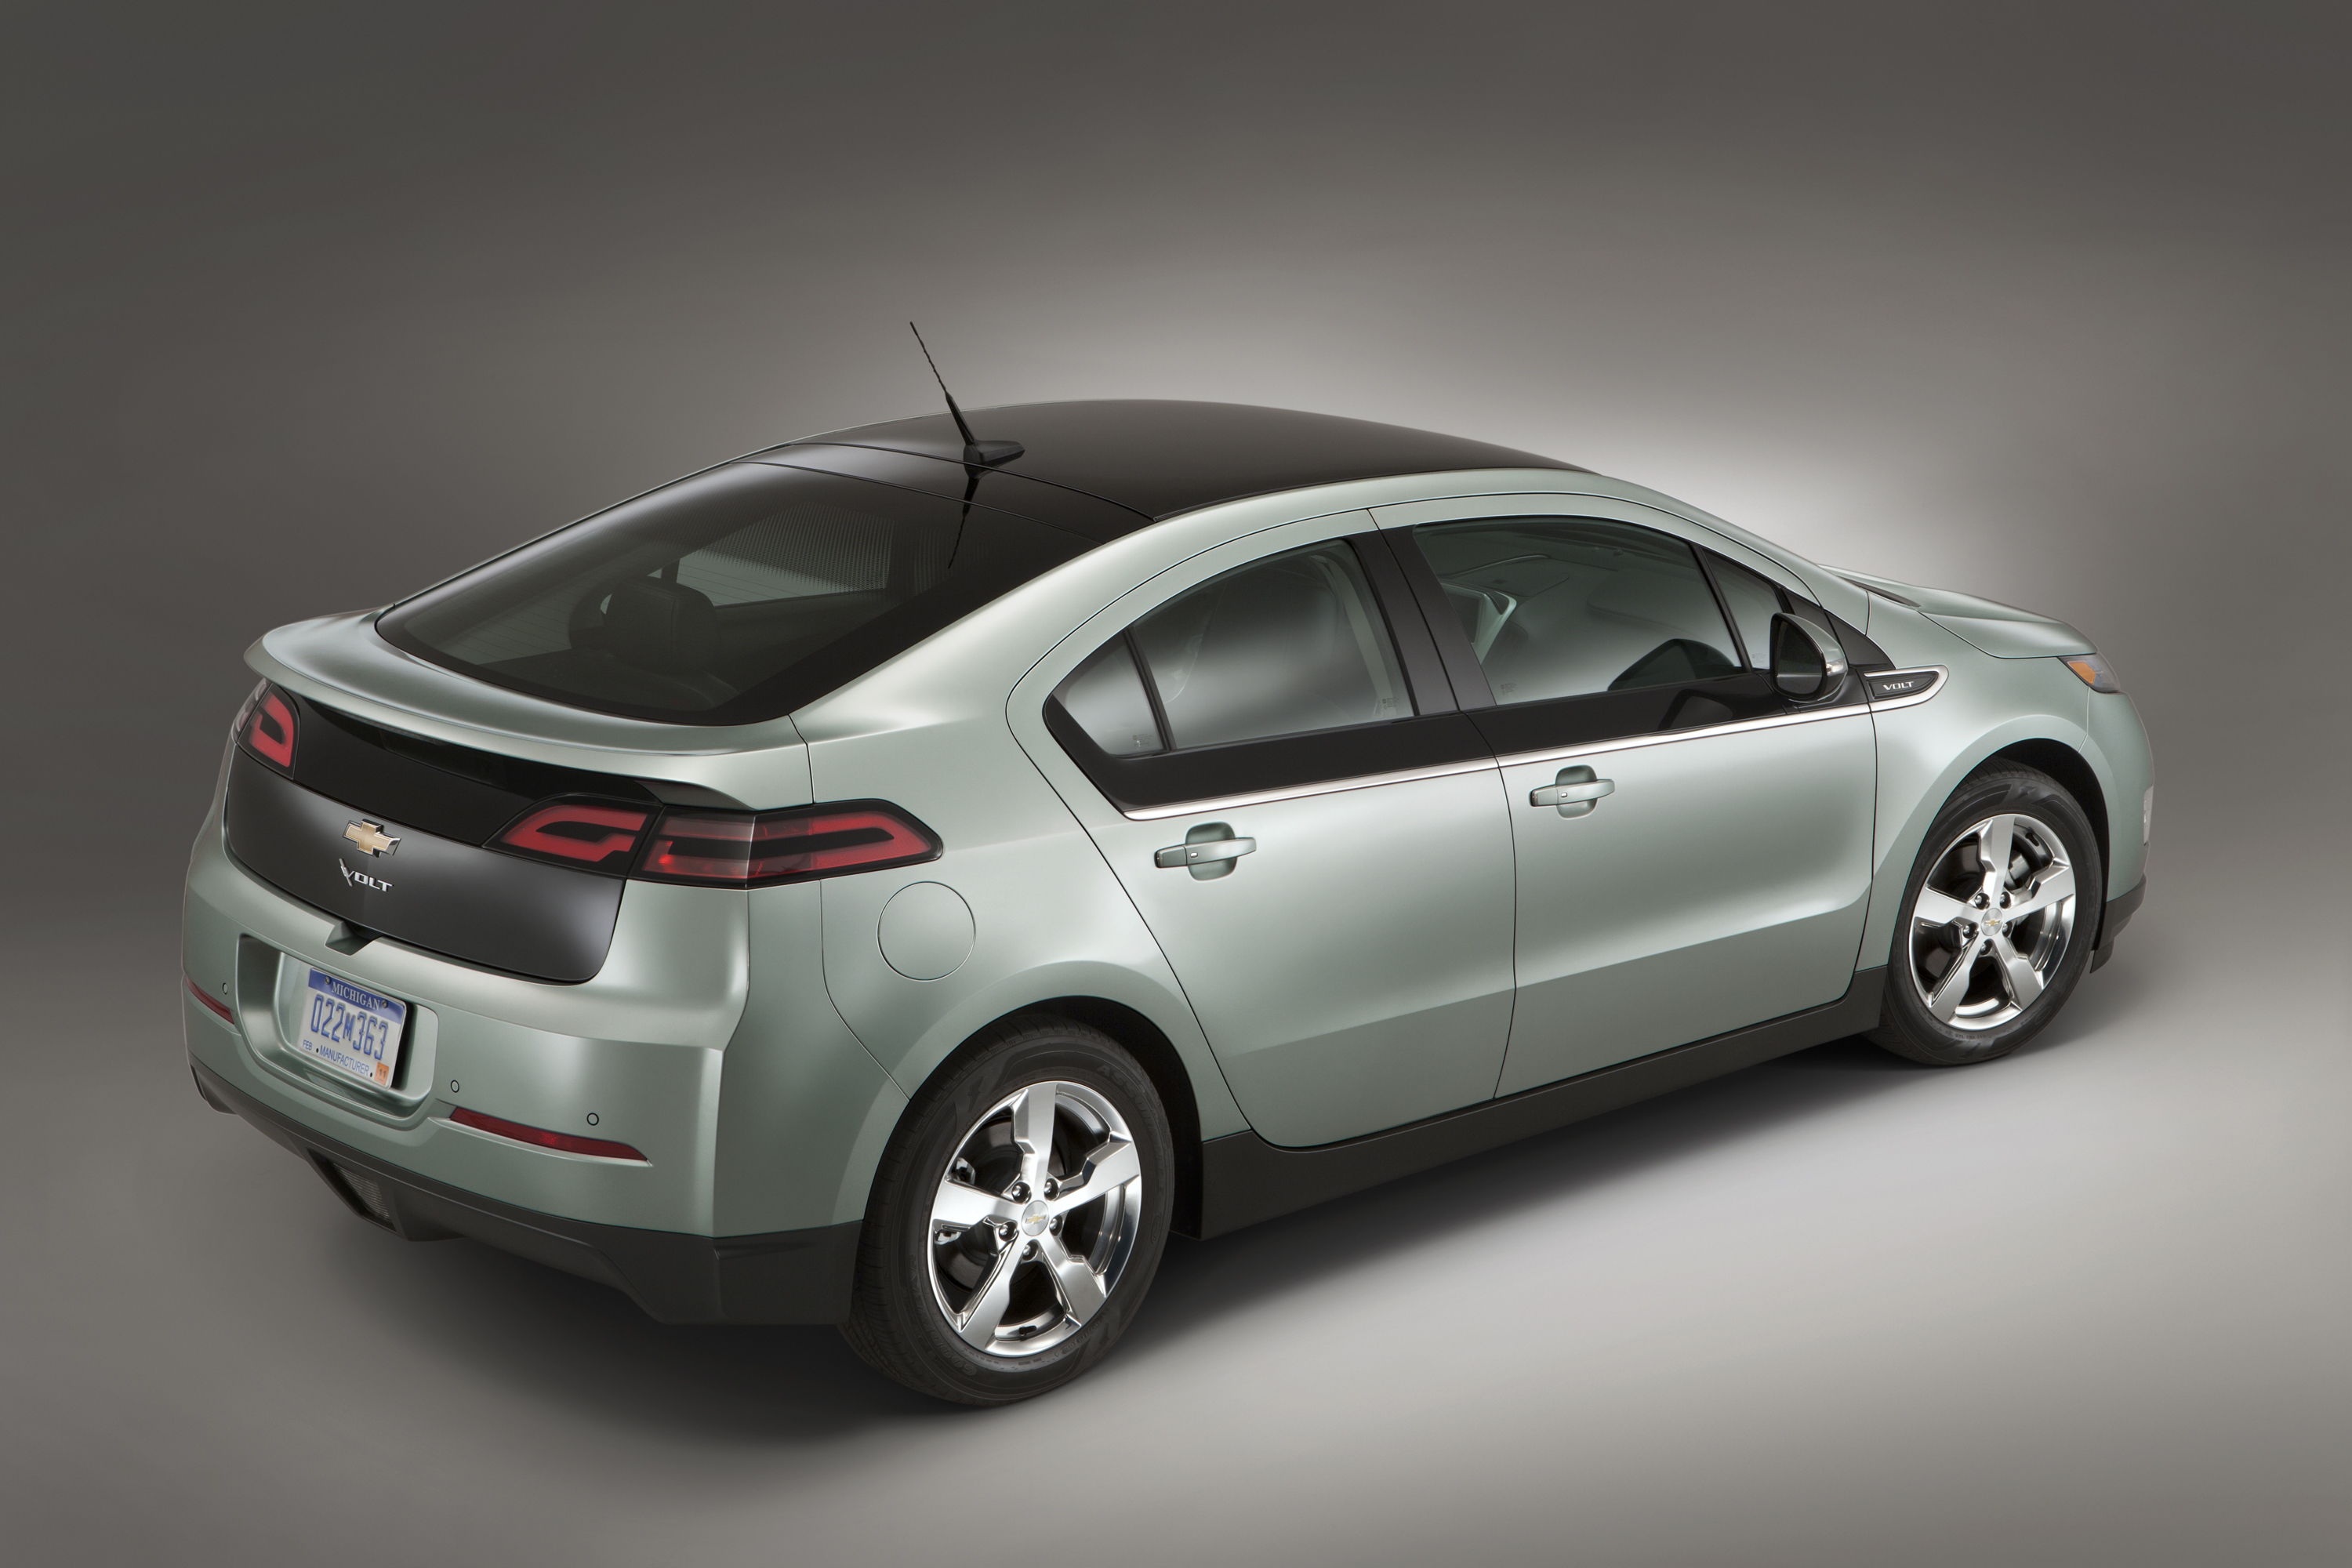 2012 chevrolet volt information and photos zombiedrive. Black Bedroom Furniture Sets. Home Design Ideas